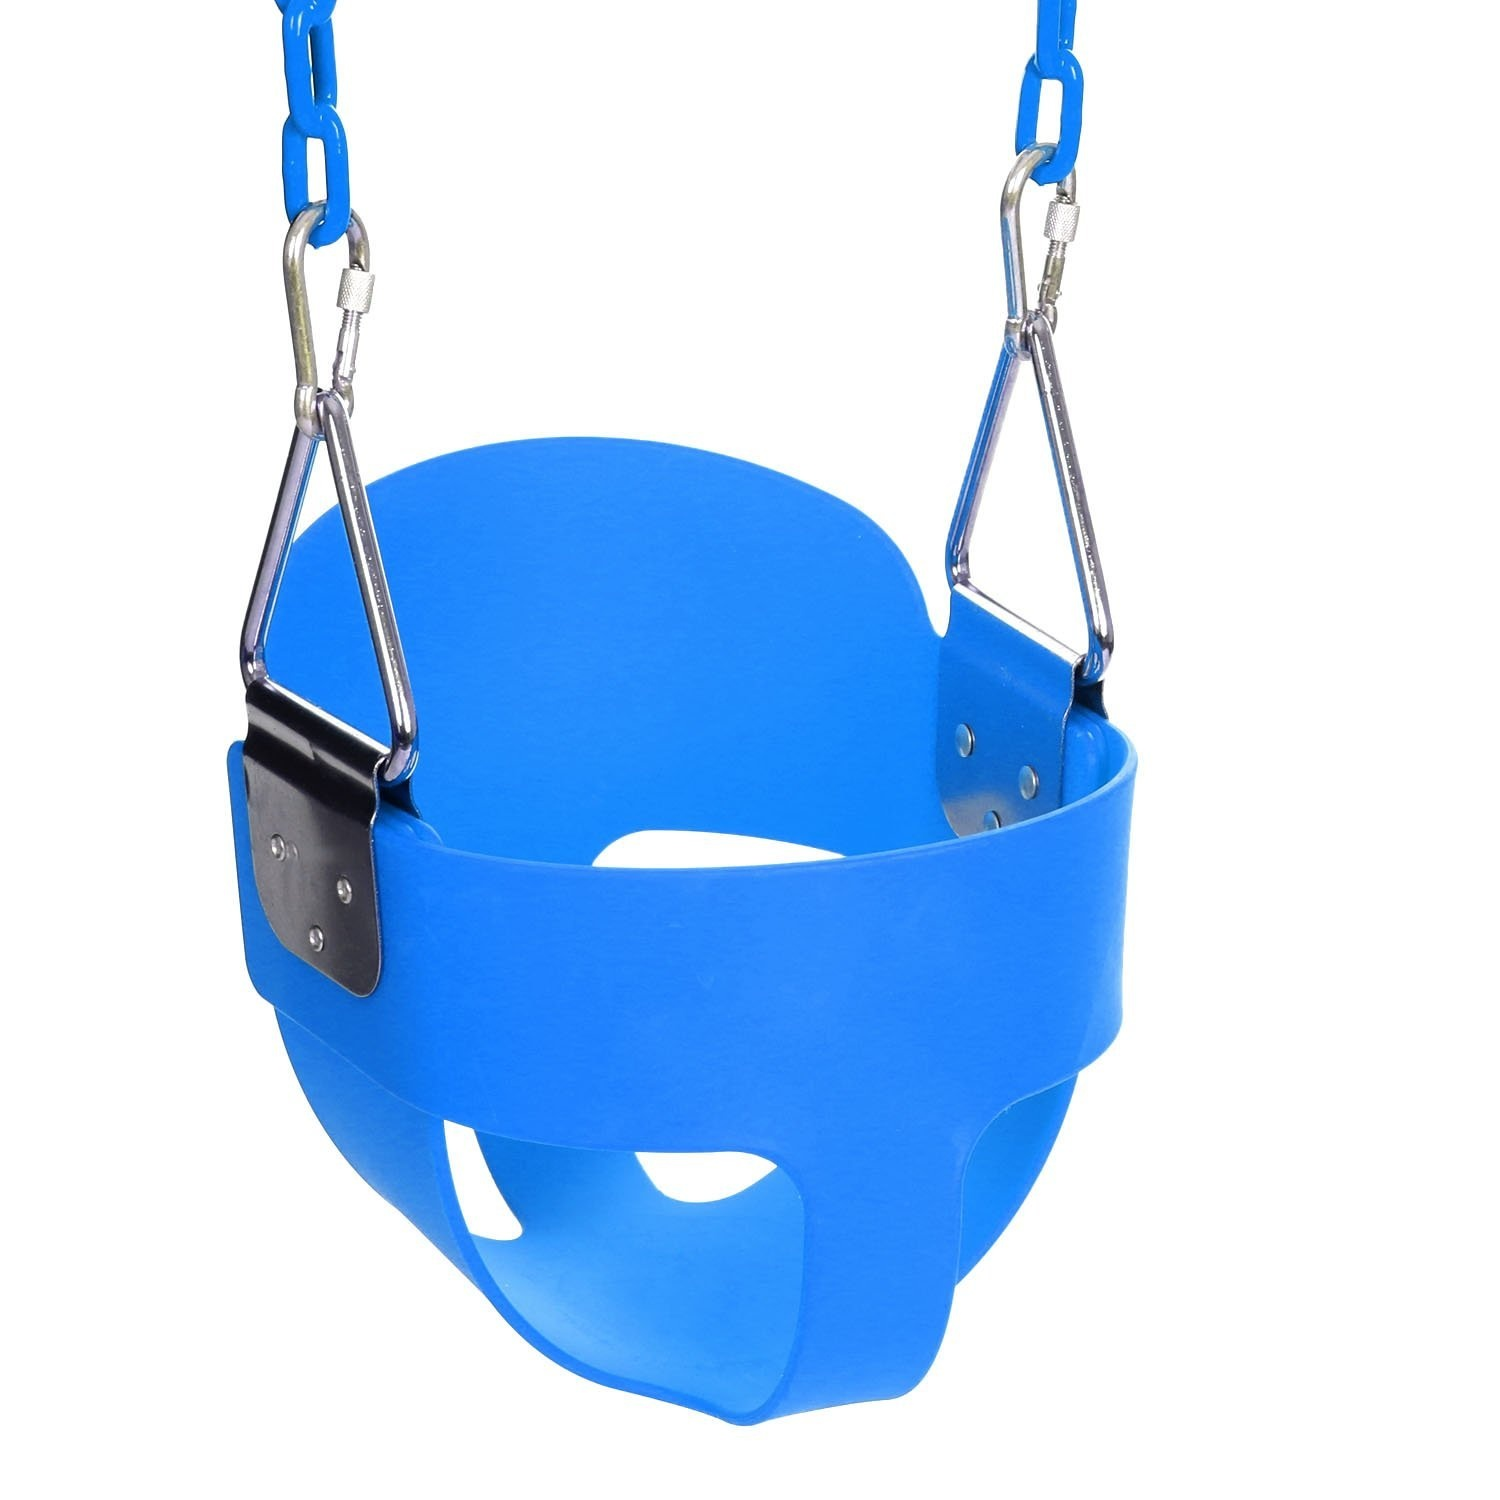 Kids Bucket Swing Toddler Outdoor Baby Swing Seat 150cm Chain By